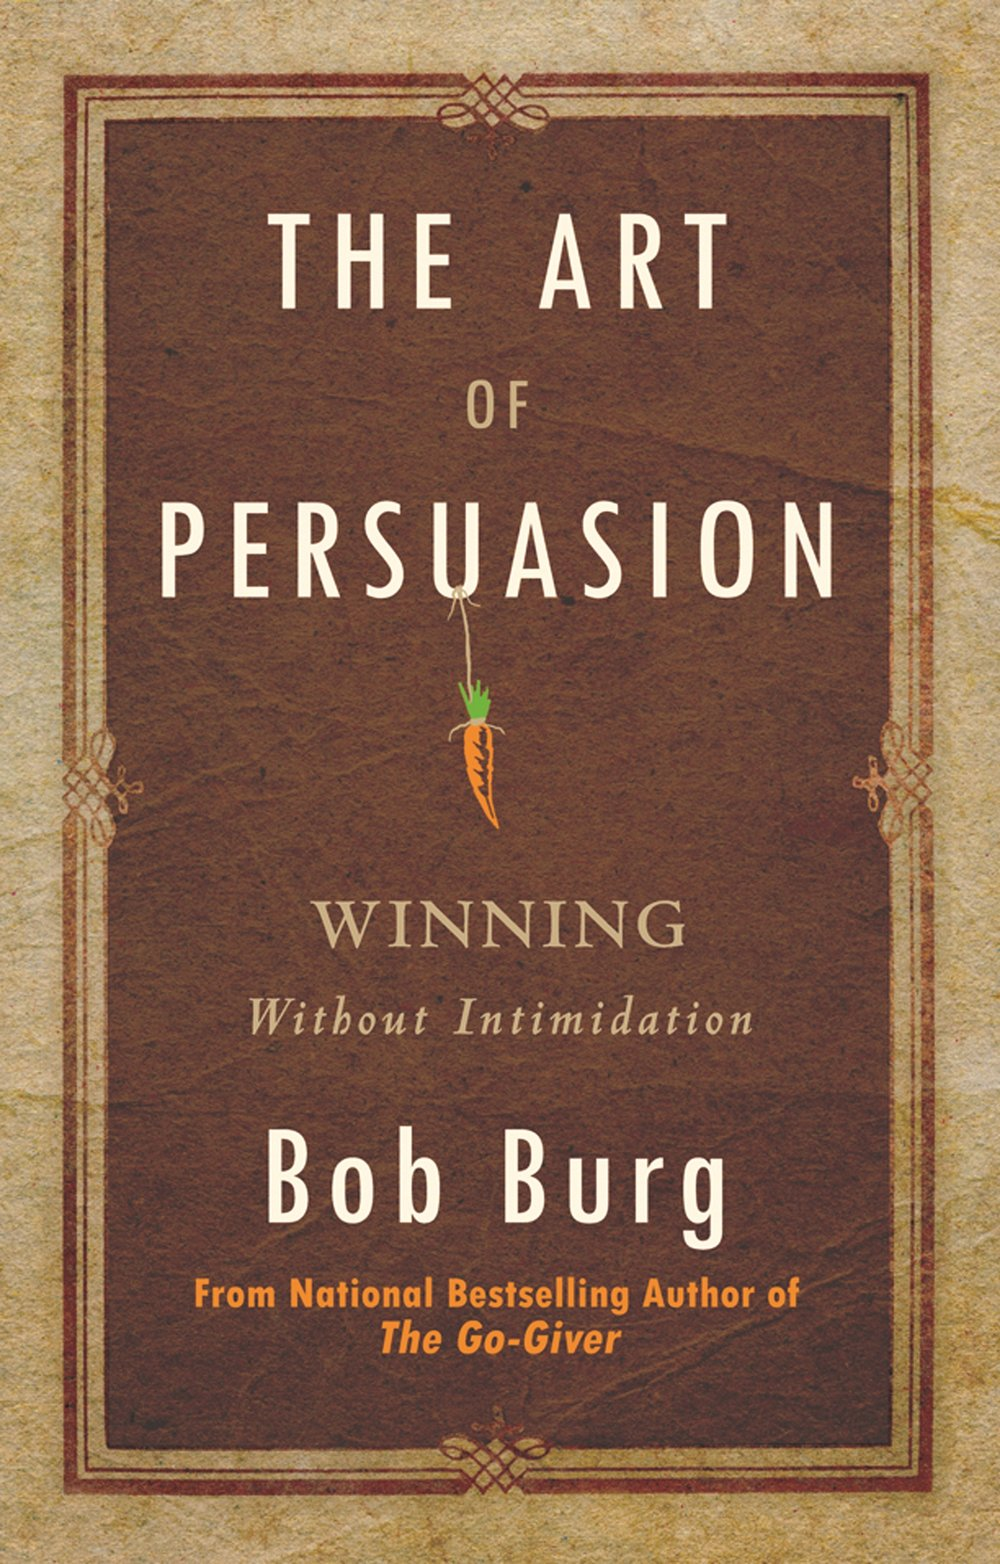 The Art of Persuasion - By Bob burg